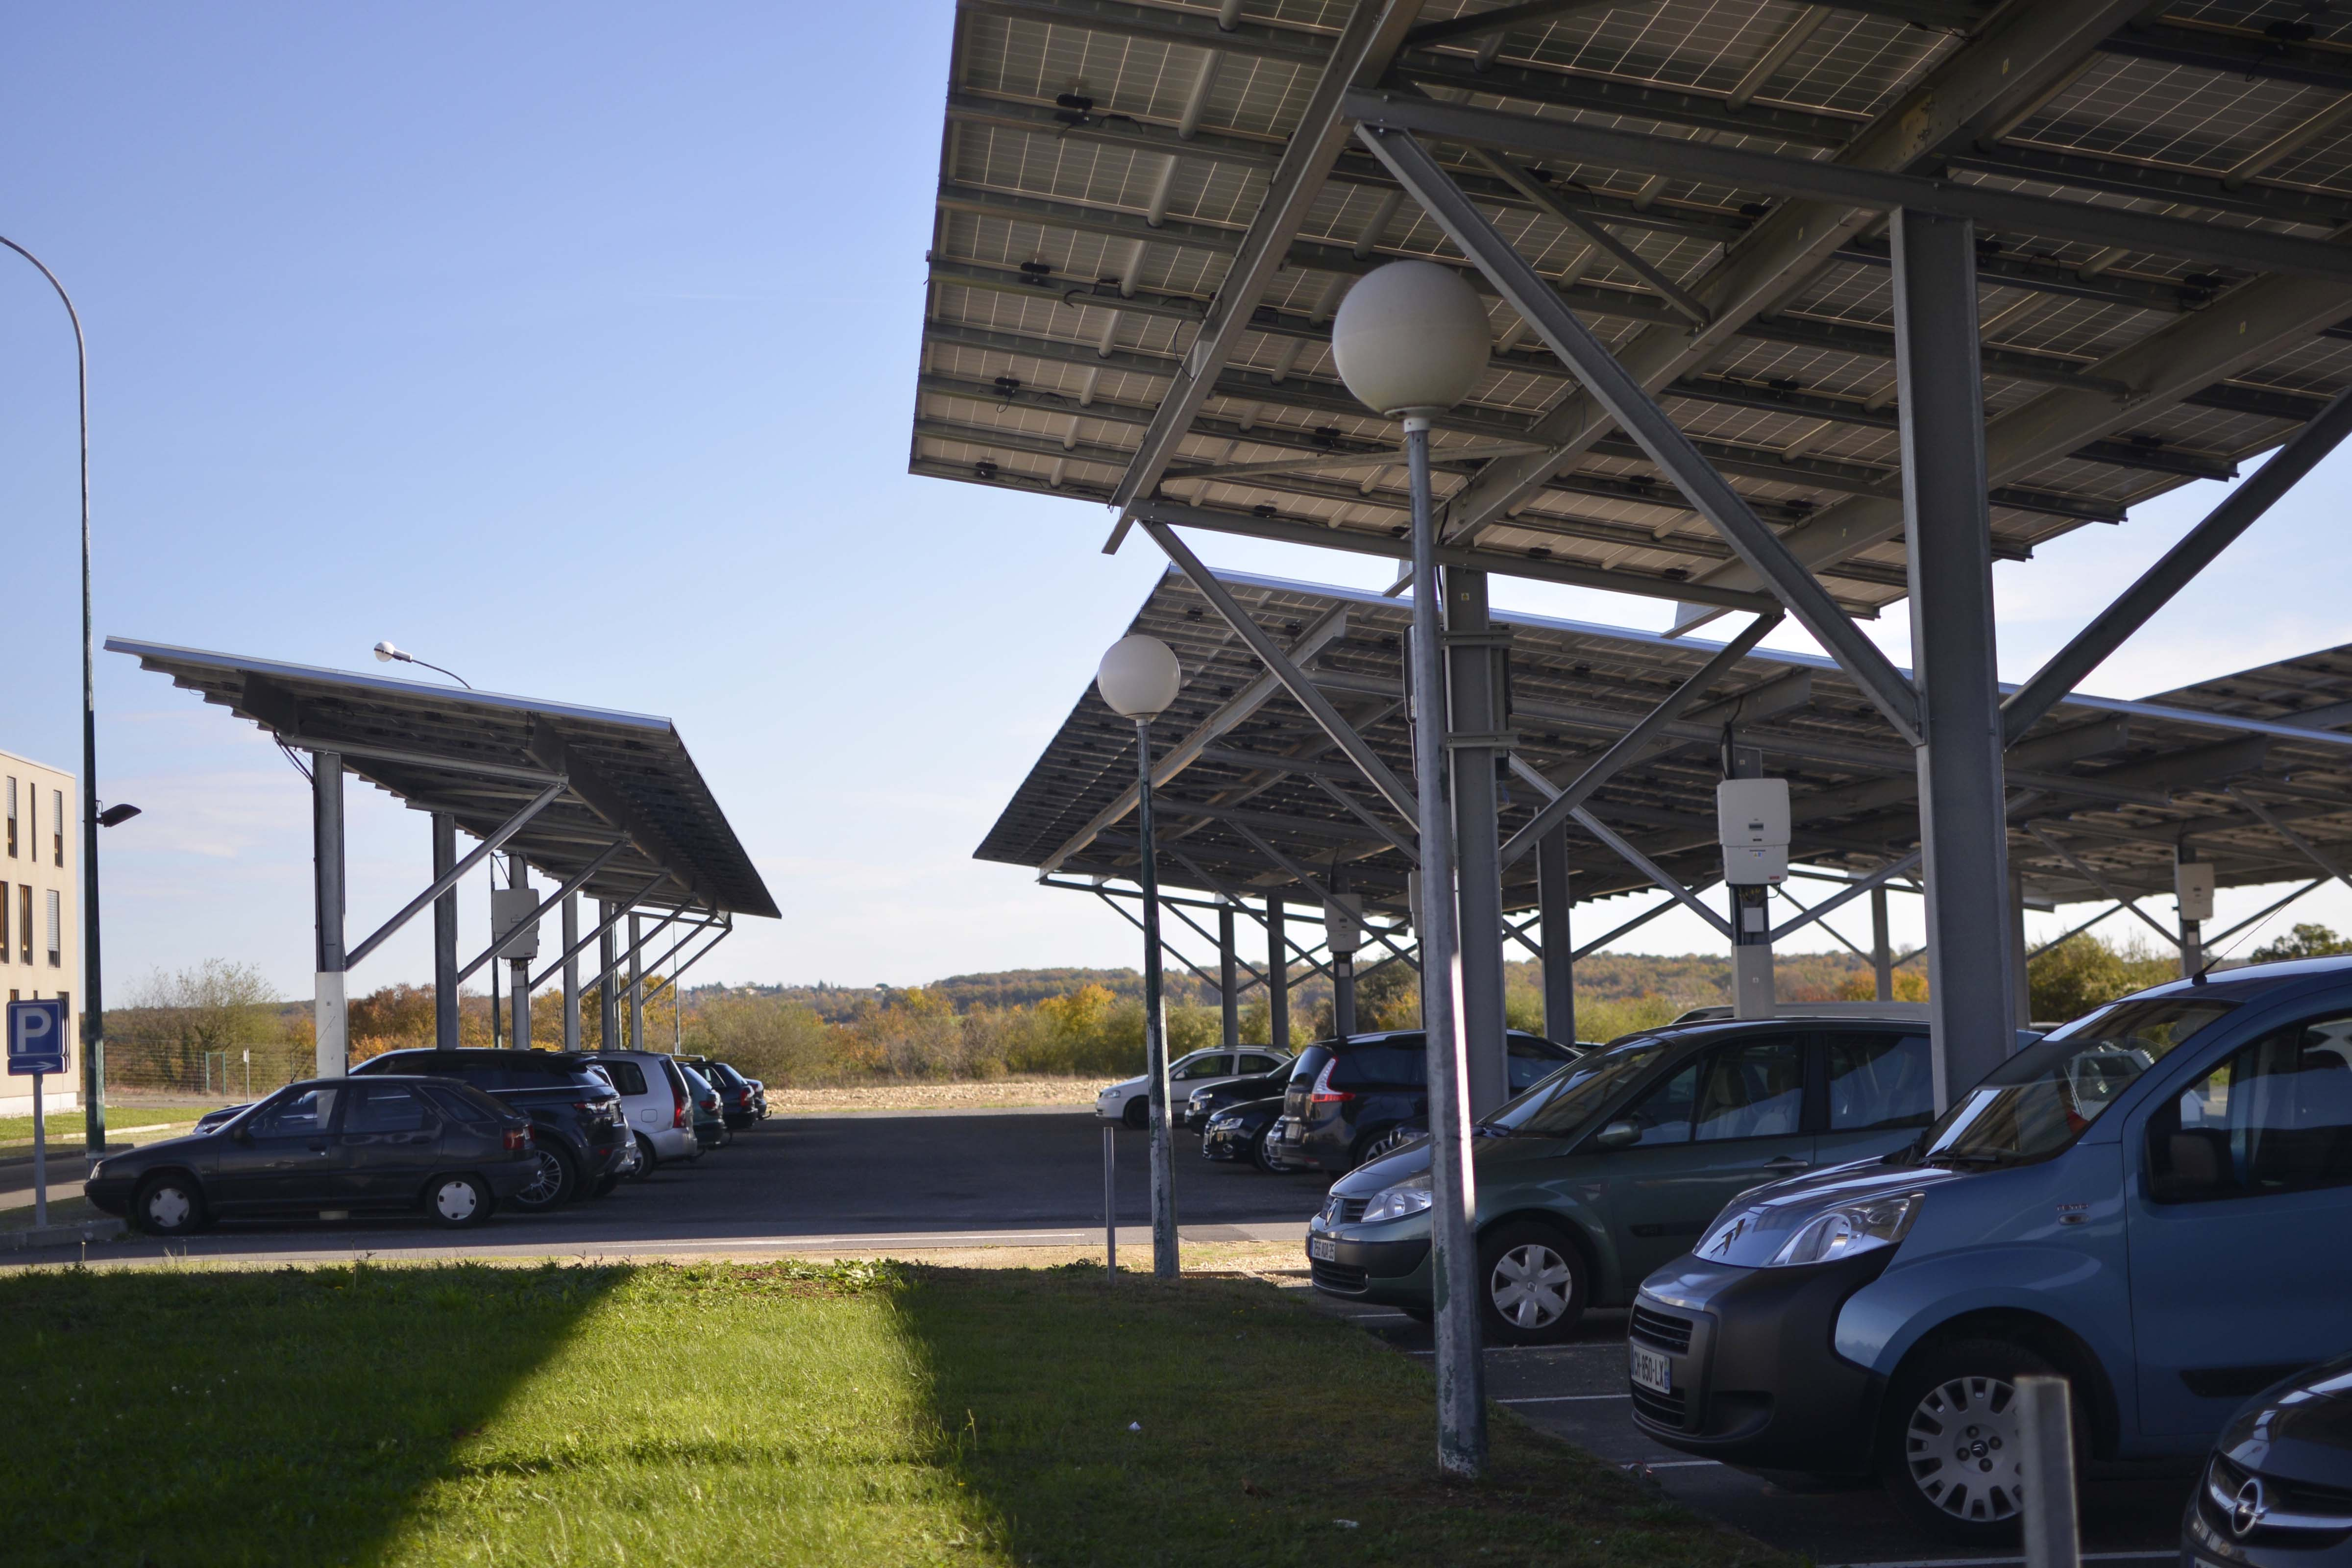 Upsolar And Solstyce Joint Venture Completes 545 kW Solar Project At French Airport